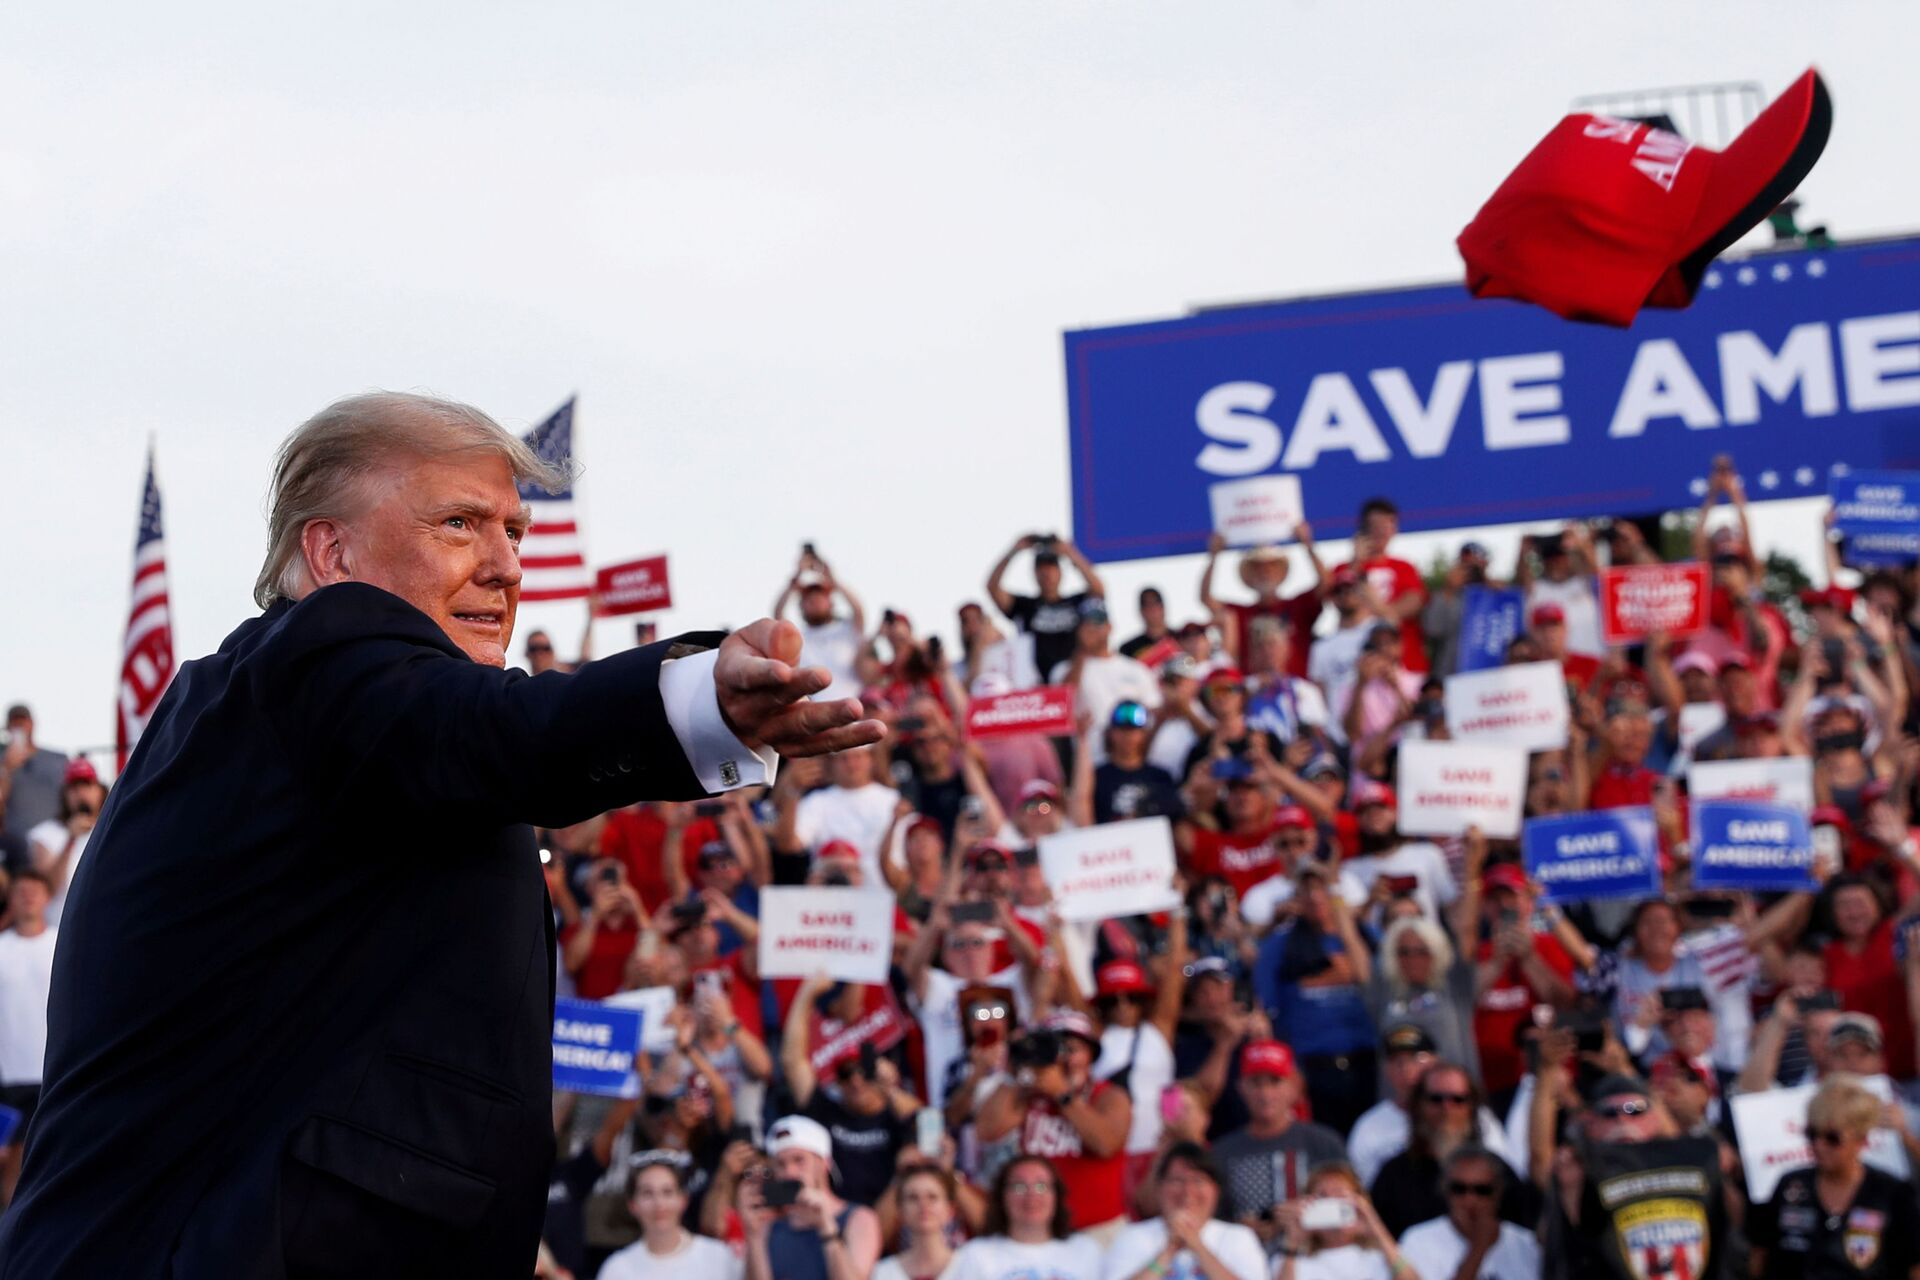 Former U.S. President Donald Trump tosses out a hat during his first post-presidency campaign rally at the Lorain County Fairgrounds in Wellington, Ohio, U.S., June 26, 2021 - Sputnik International, 1920, 07.09.2021